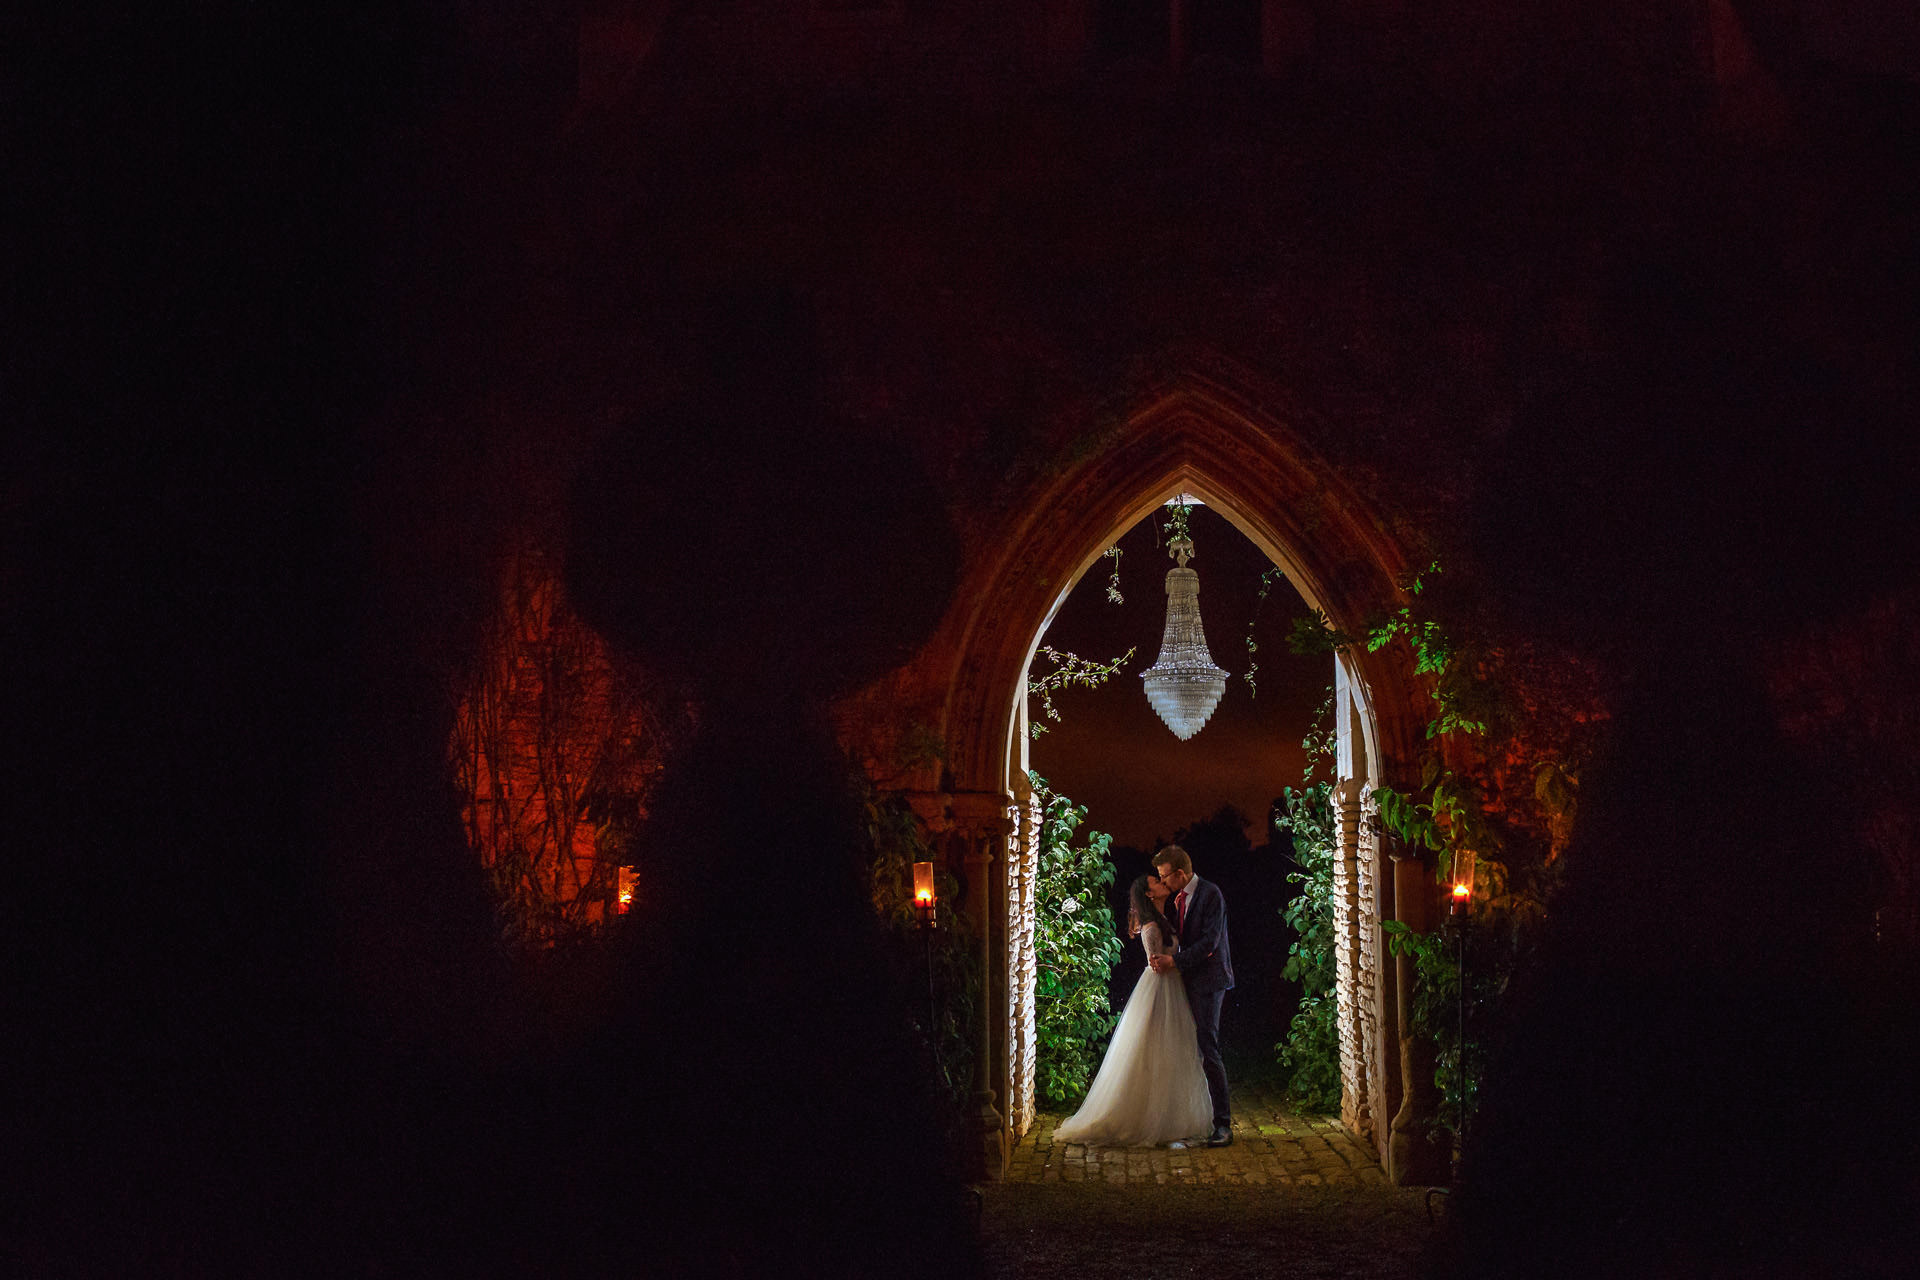 wedding photo under the arch of a married couple